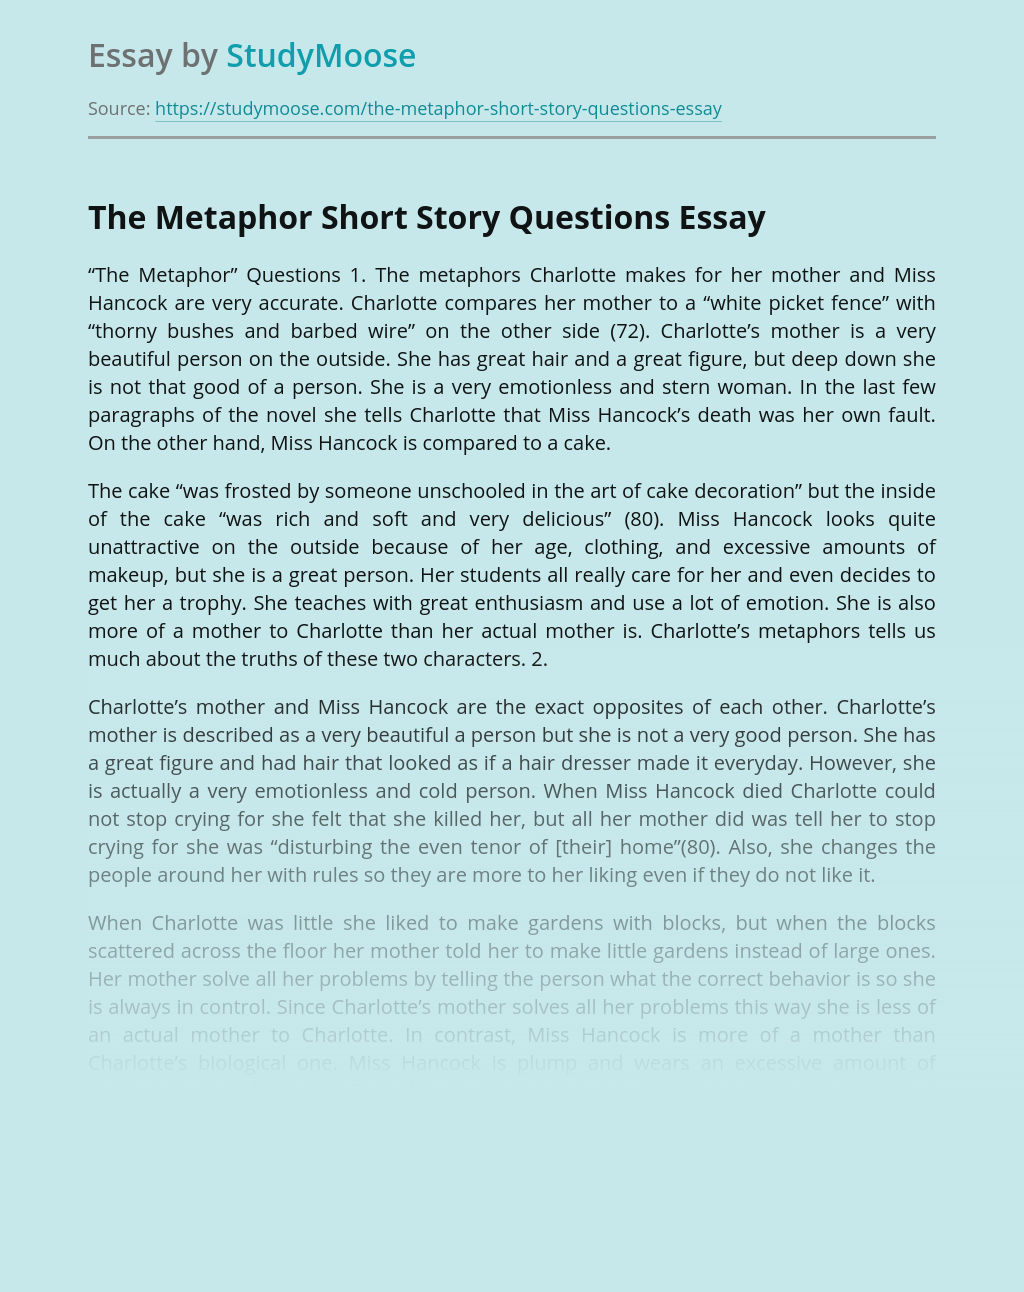 The Metaphor Short Story Questions